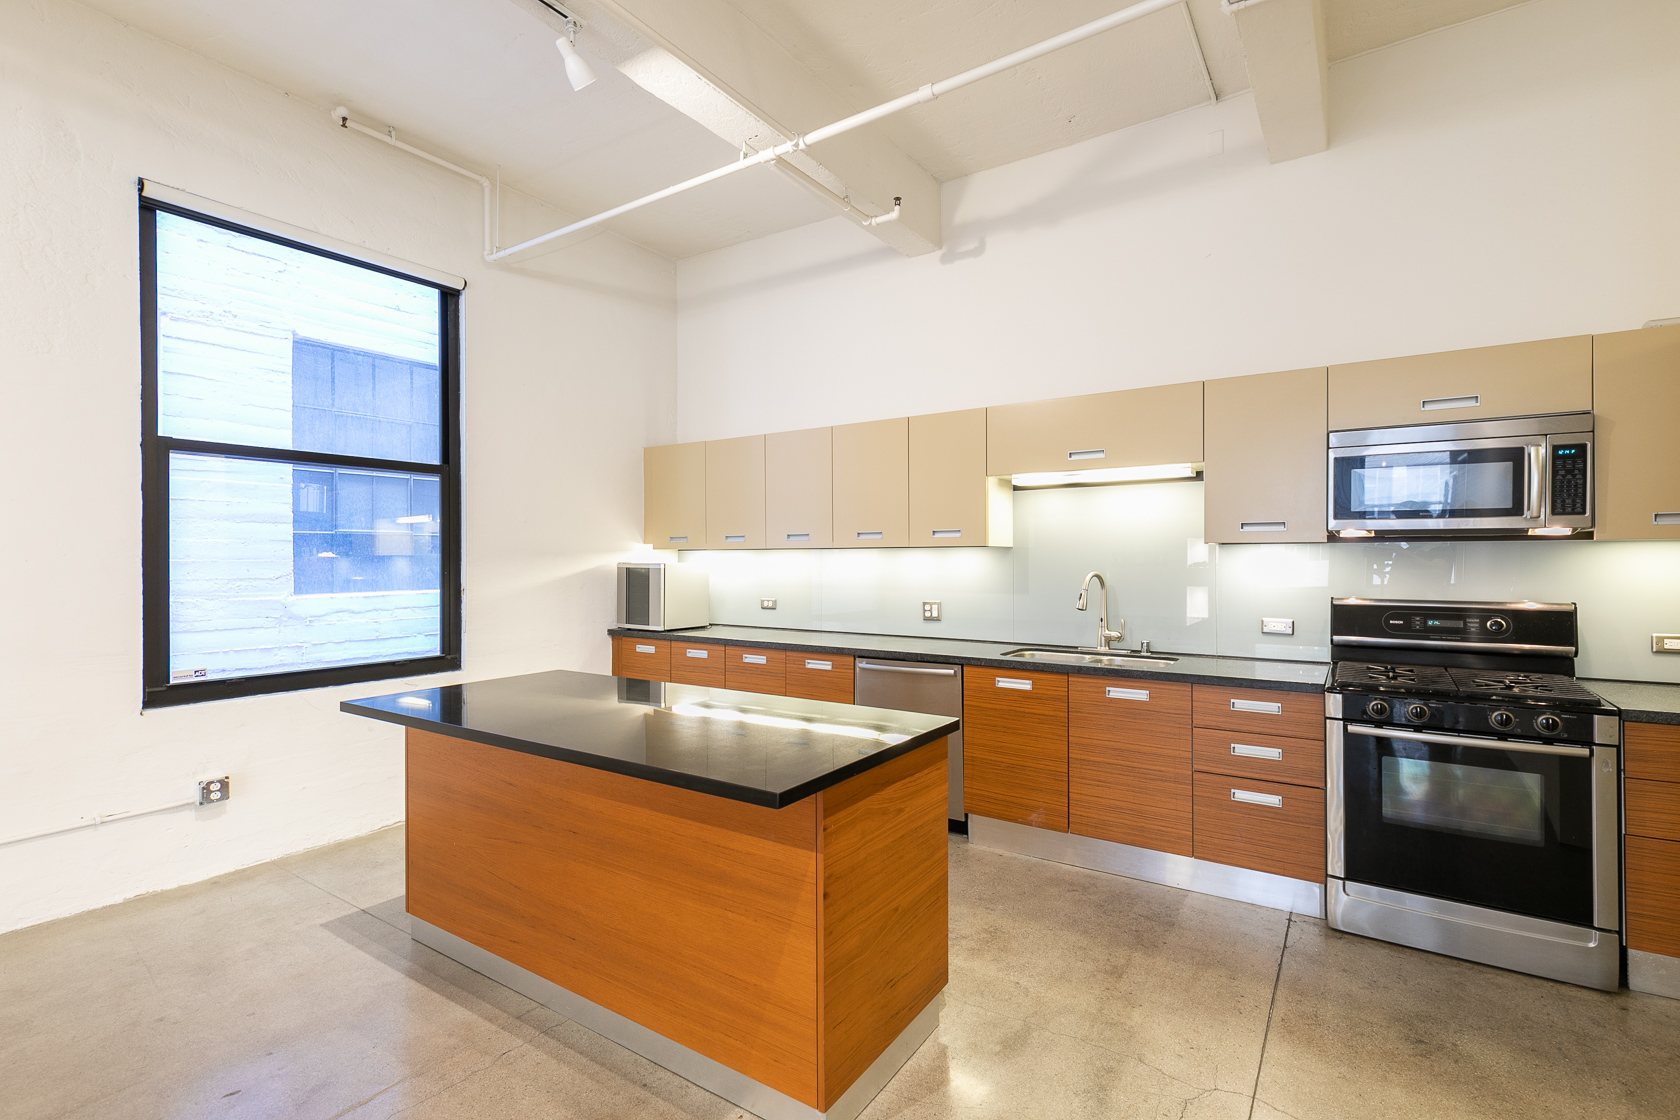 ROOFTOP POOL | DTLA LOFT LIVING | AMAZING AMENITIES | PARKING IN BUILDING | CLOSE TO ALL THE GOOD EATS!